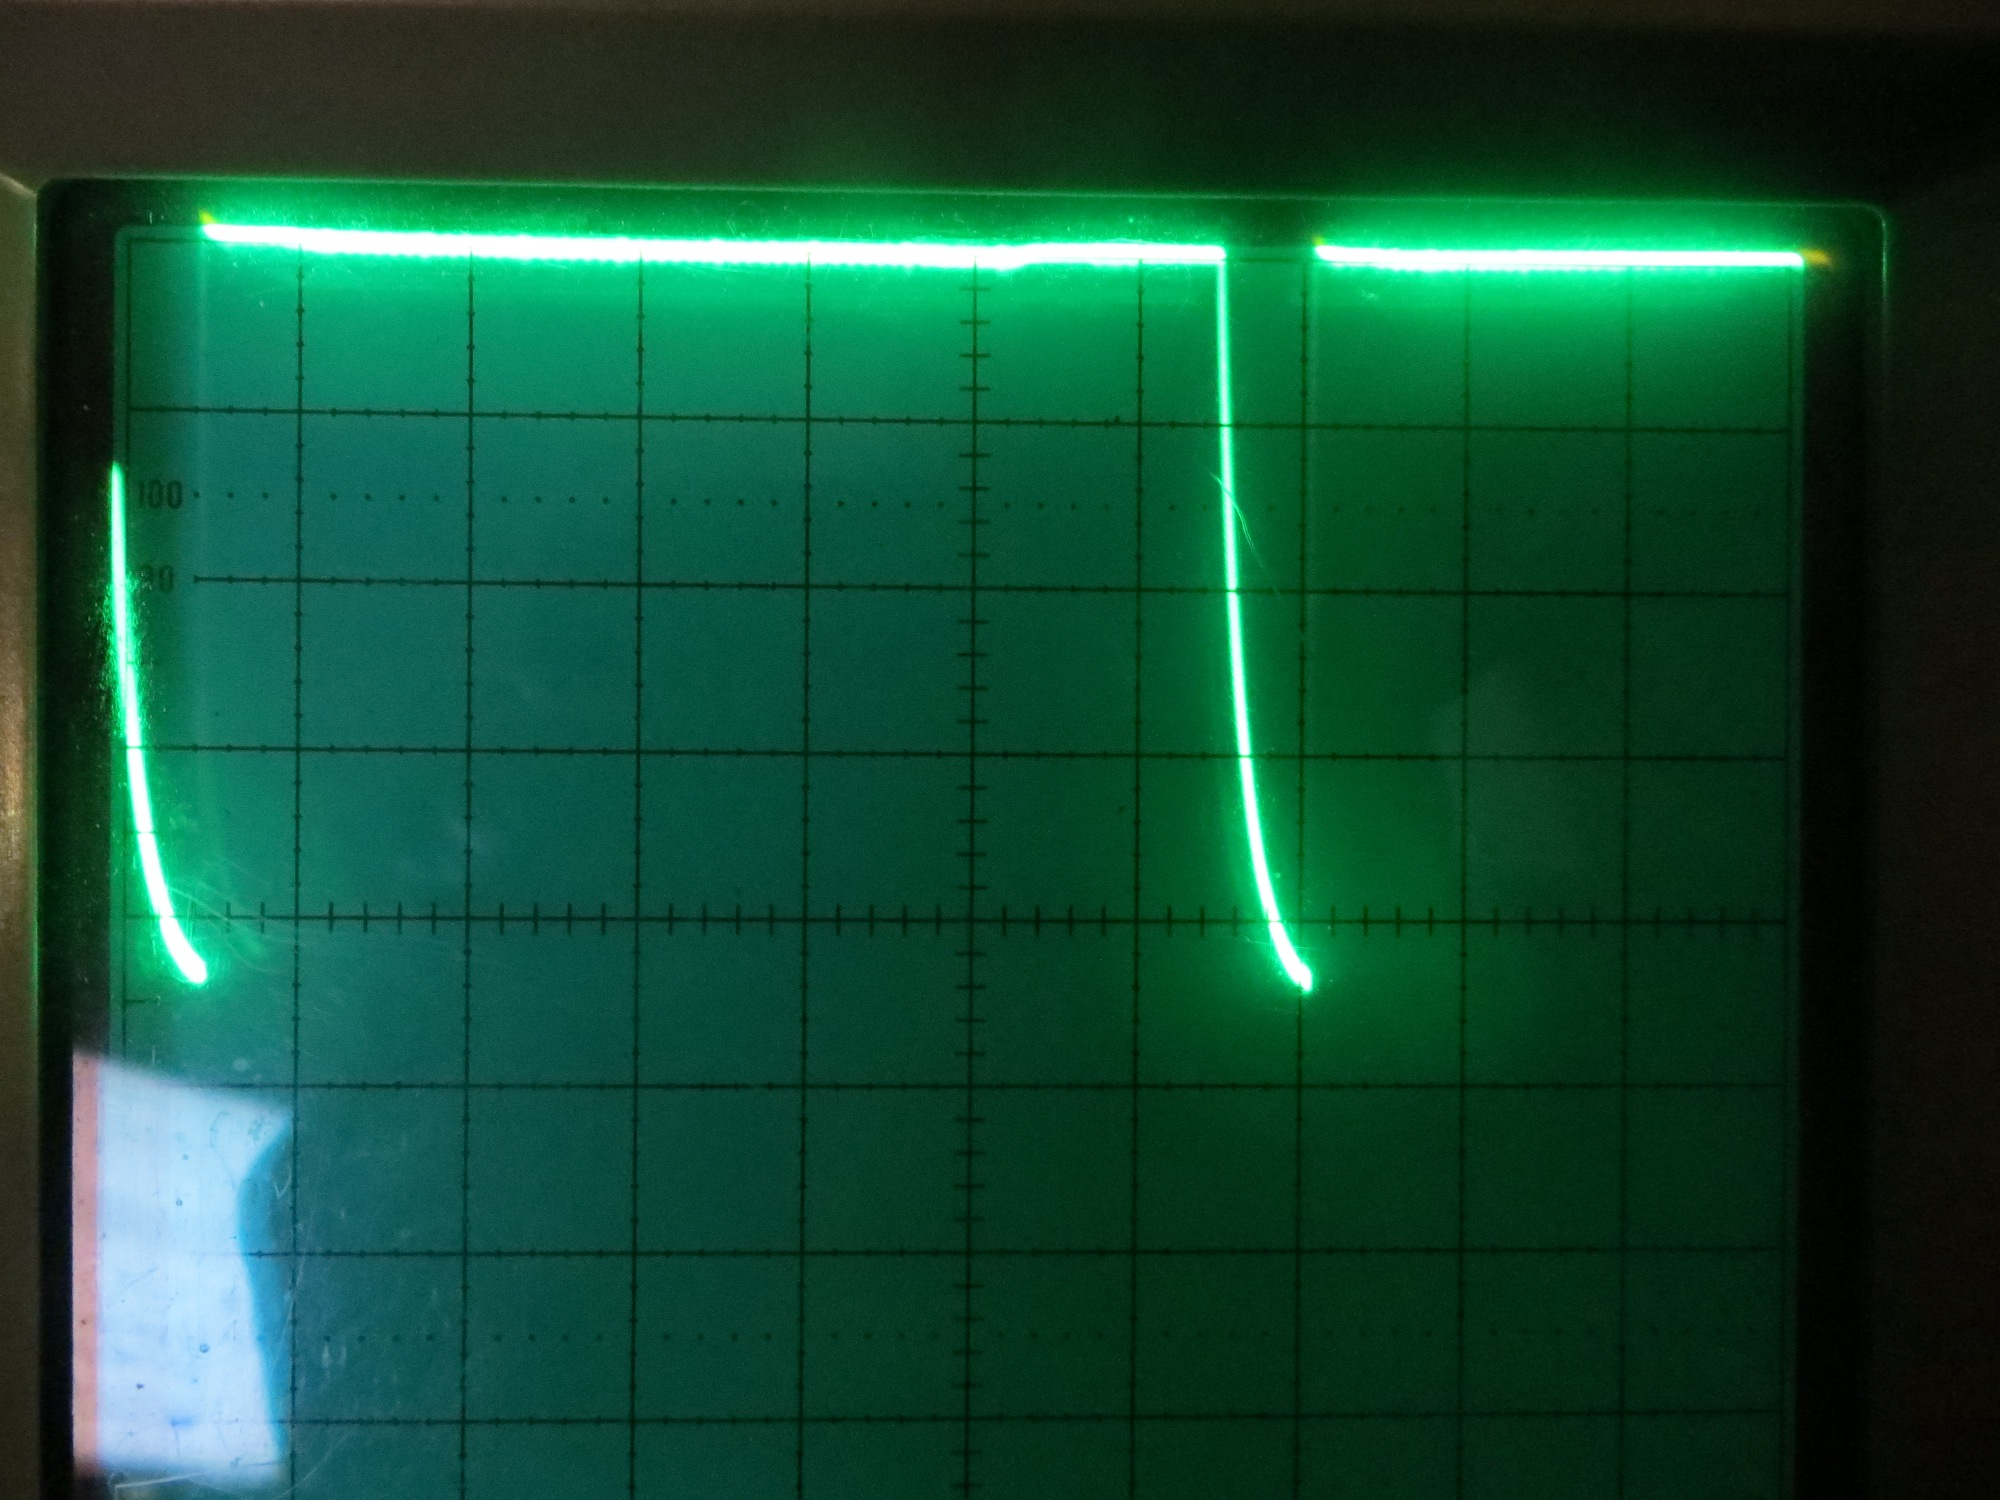 I2C Interface Testing for the LIDAR-Lite V1 - Paynter's Palace